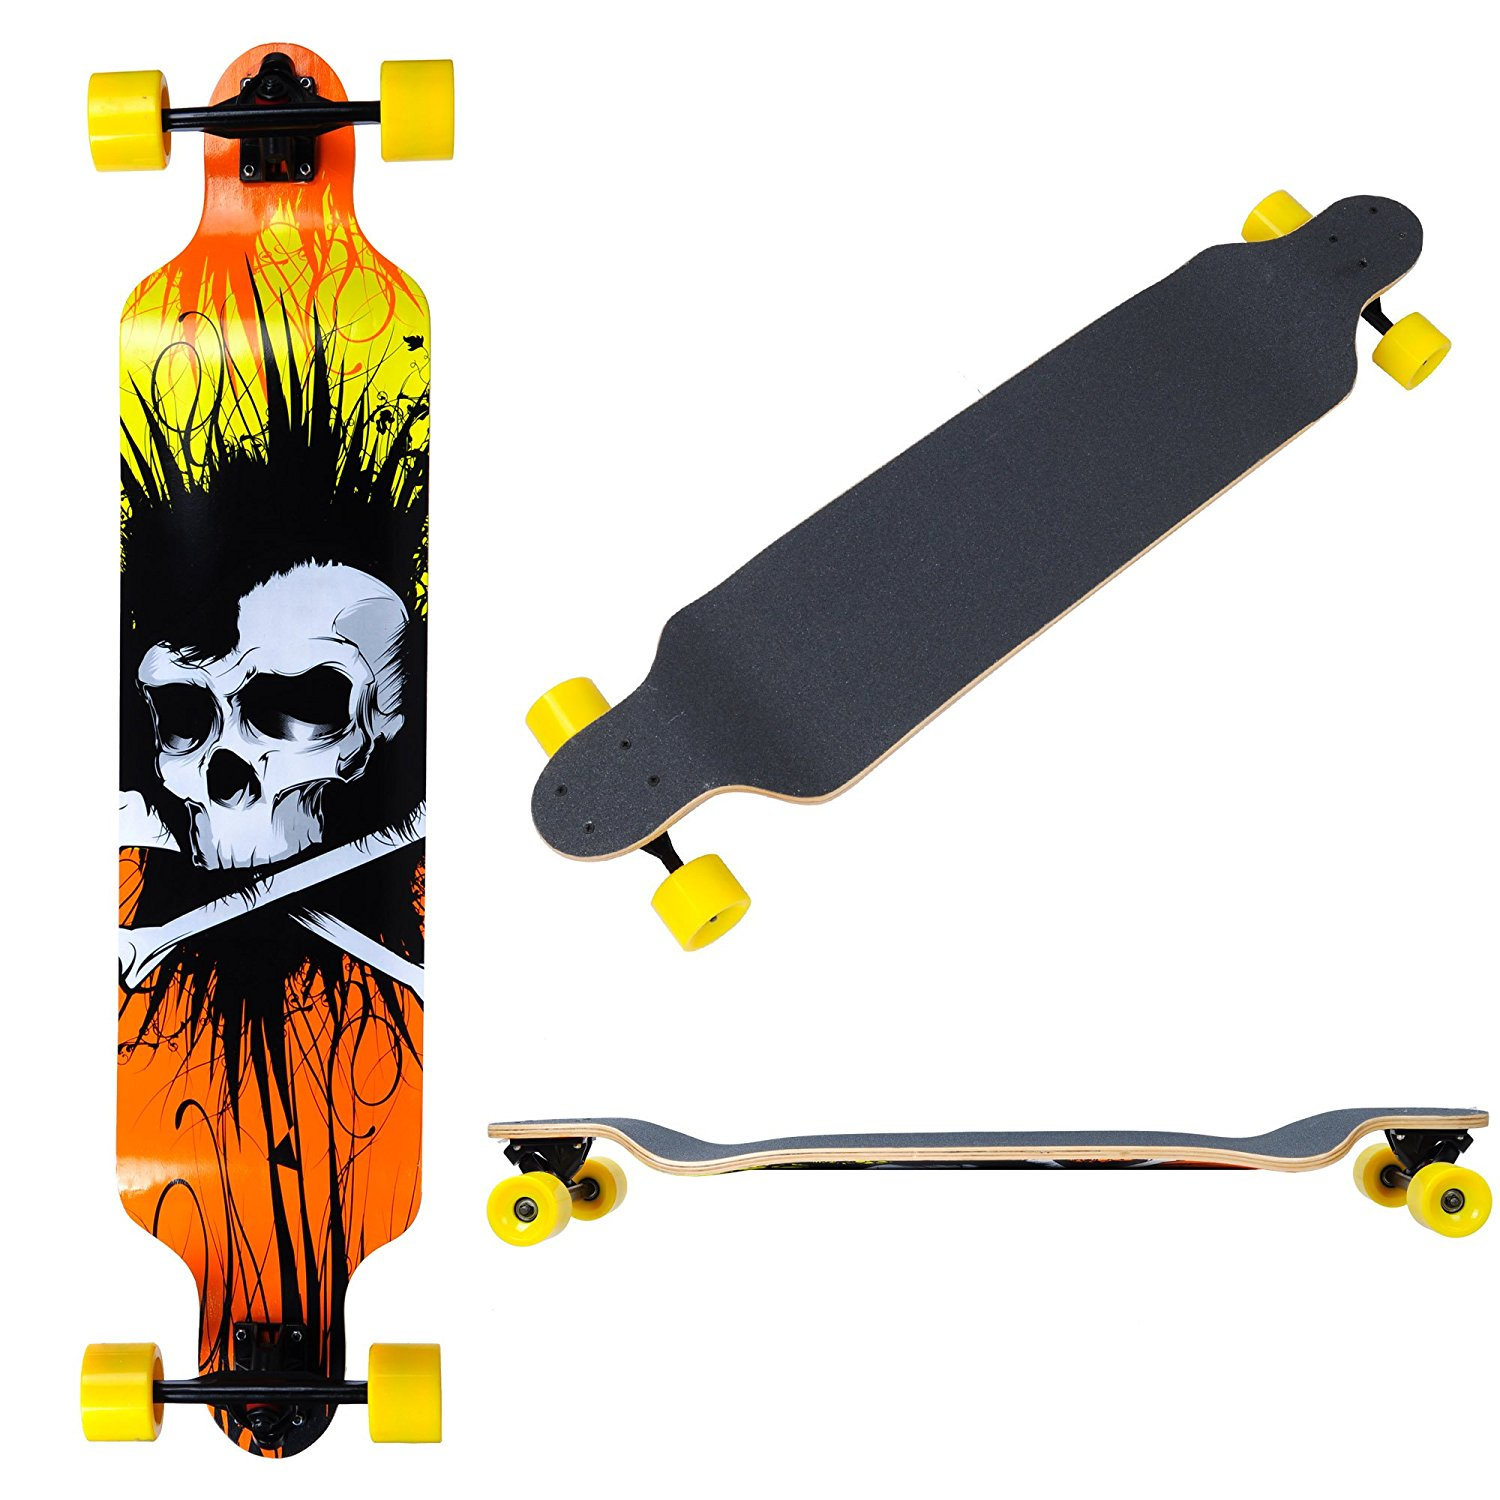 "GHP Wild Skeleton 7-Layer Canadian Maple Deck 41""x9.5"" Complete Downhill Longboard"